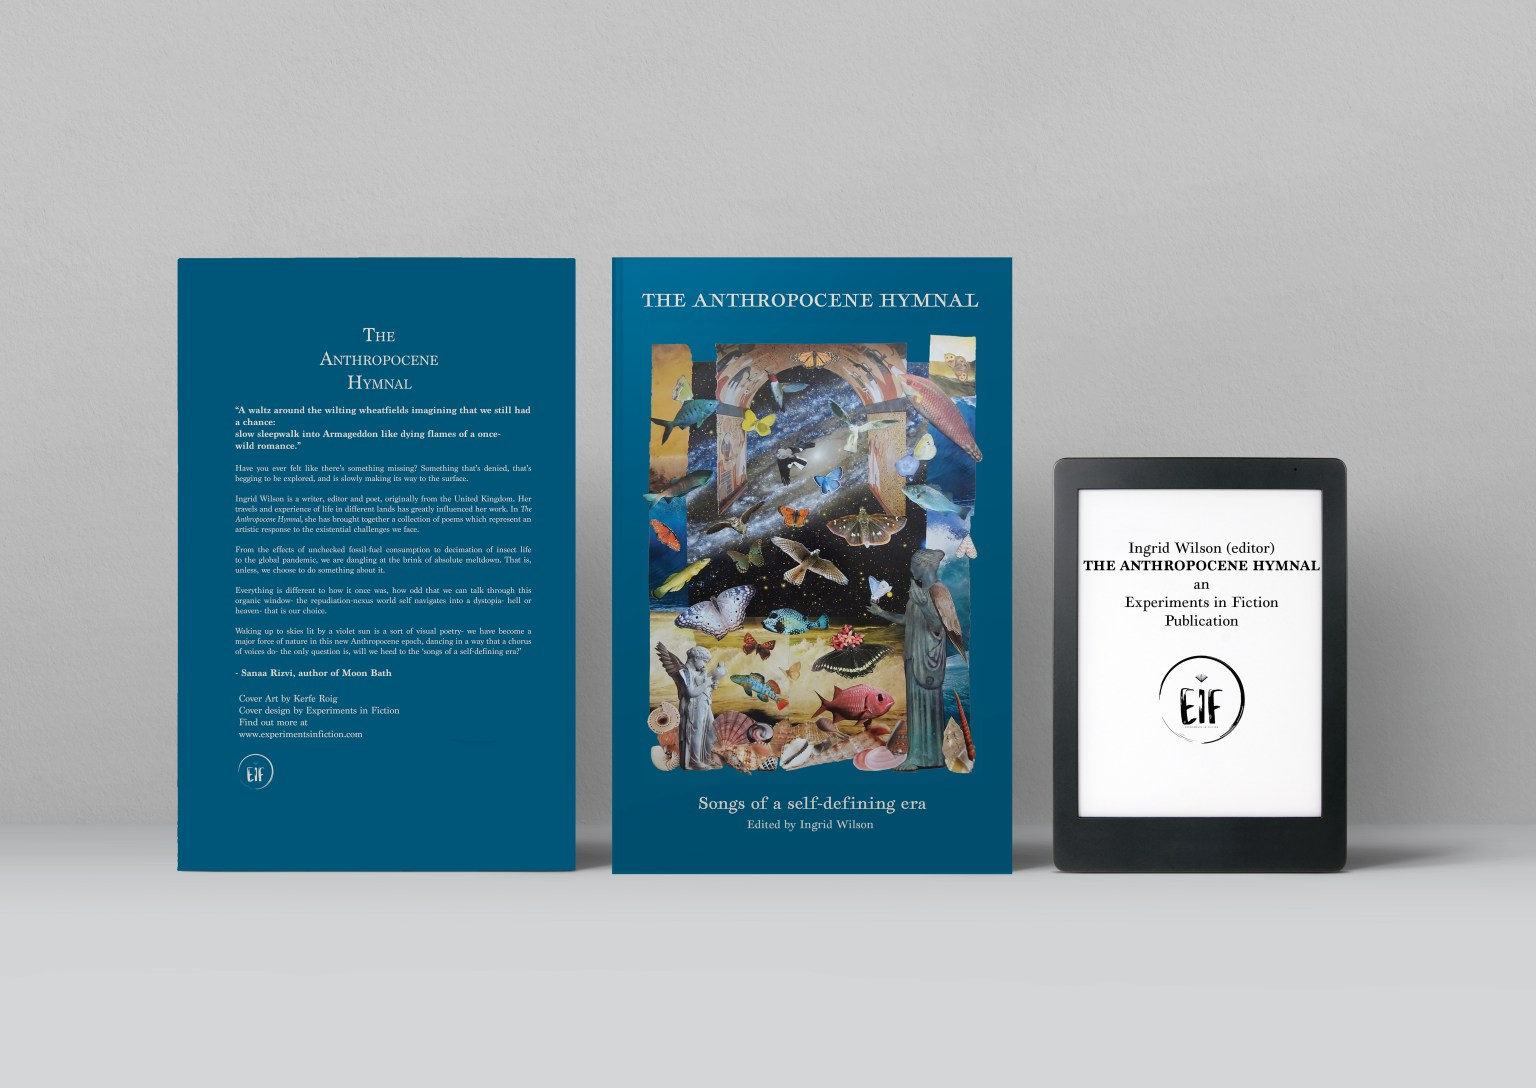 Image of the book cover.